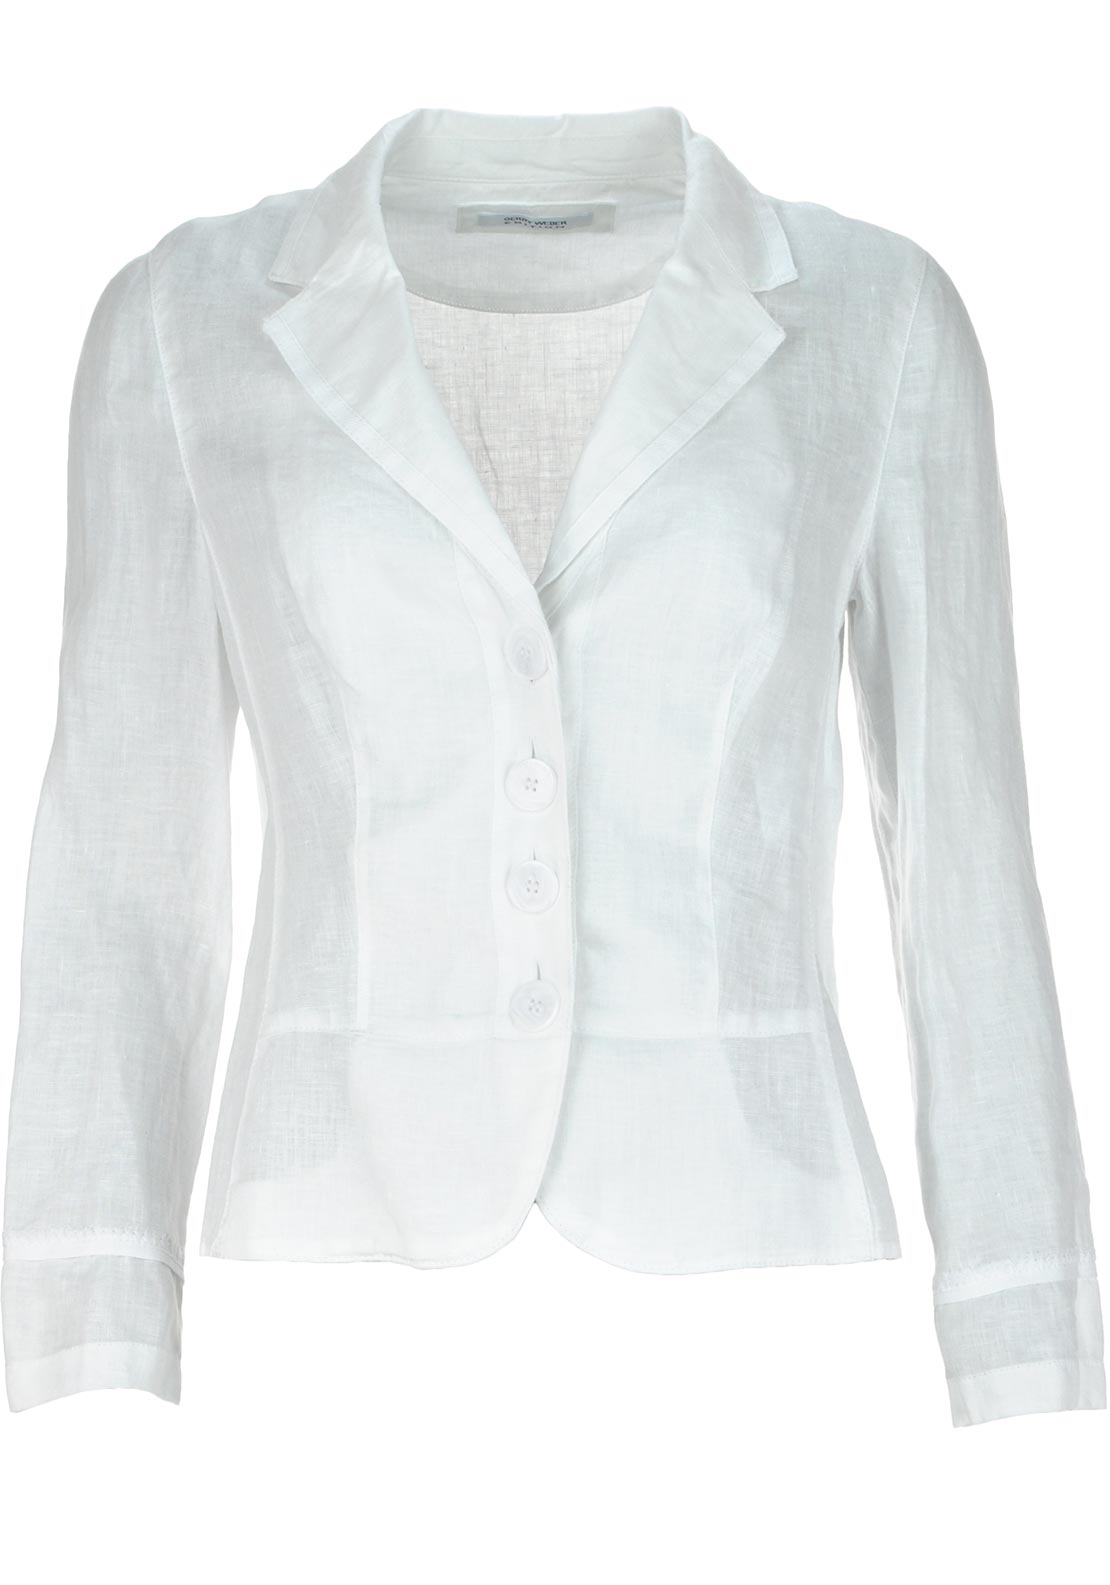 Gerry Weber Linen Blazer Jacket, White